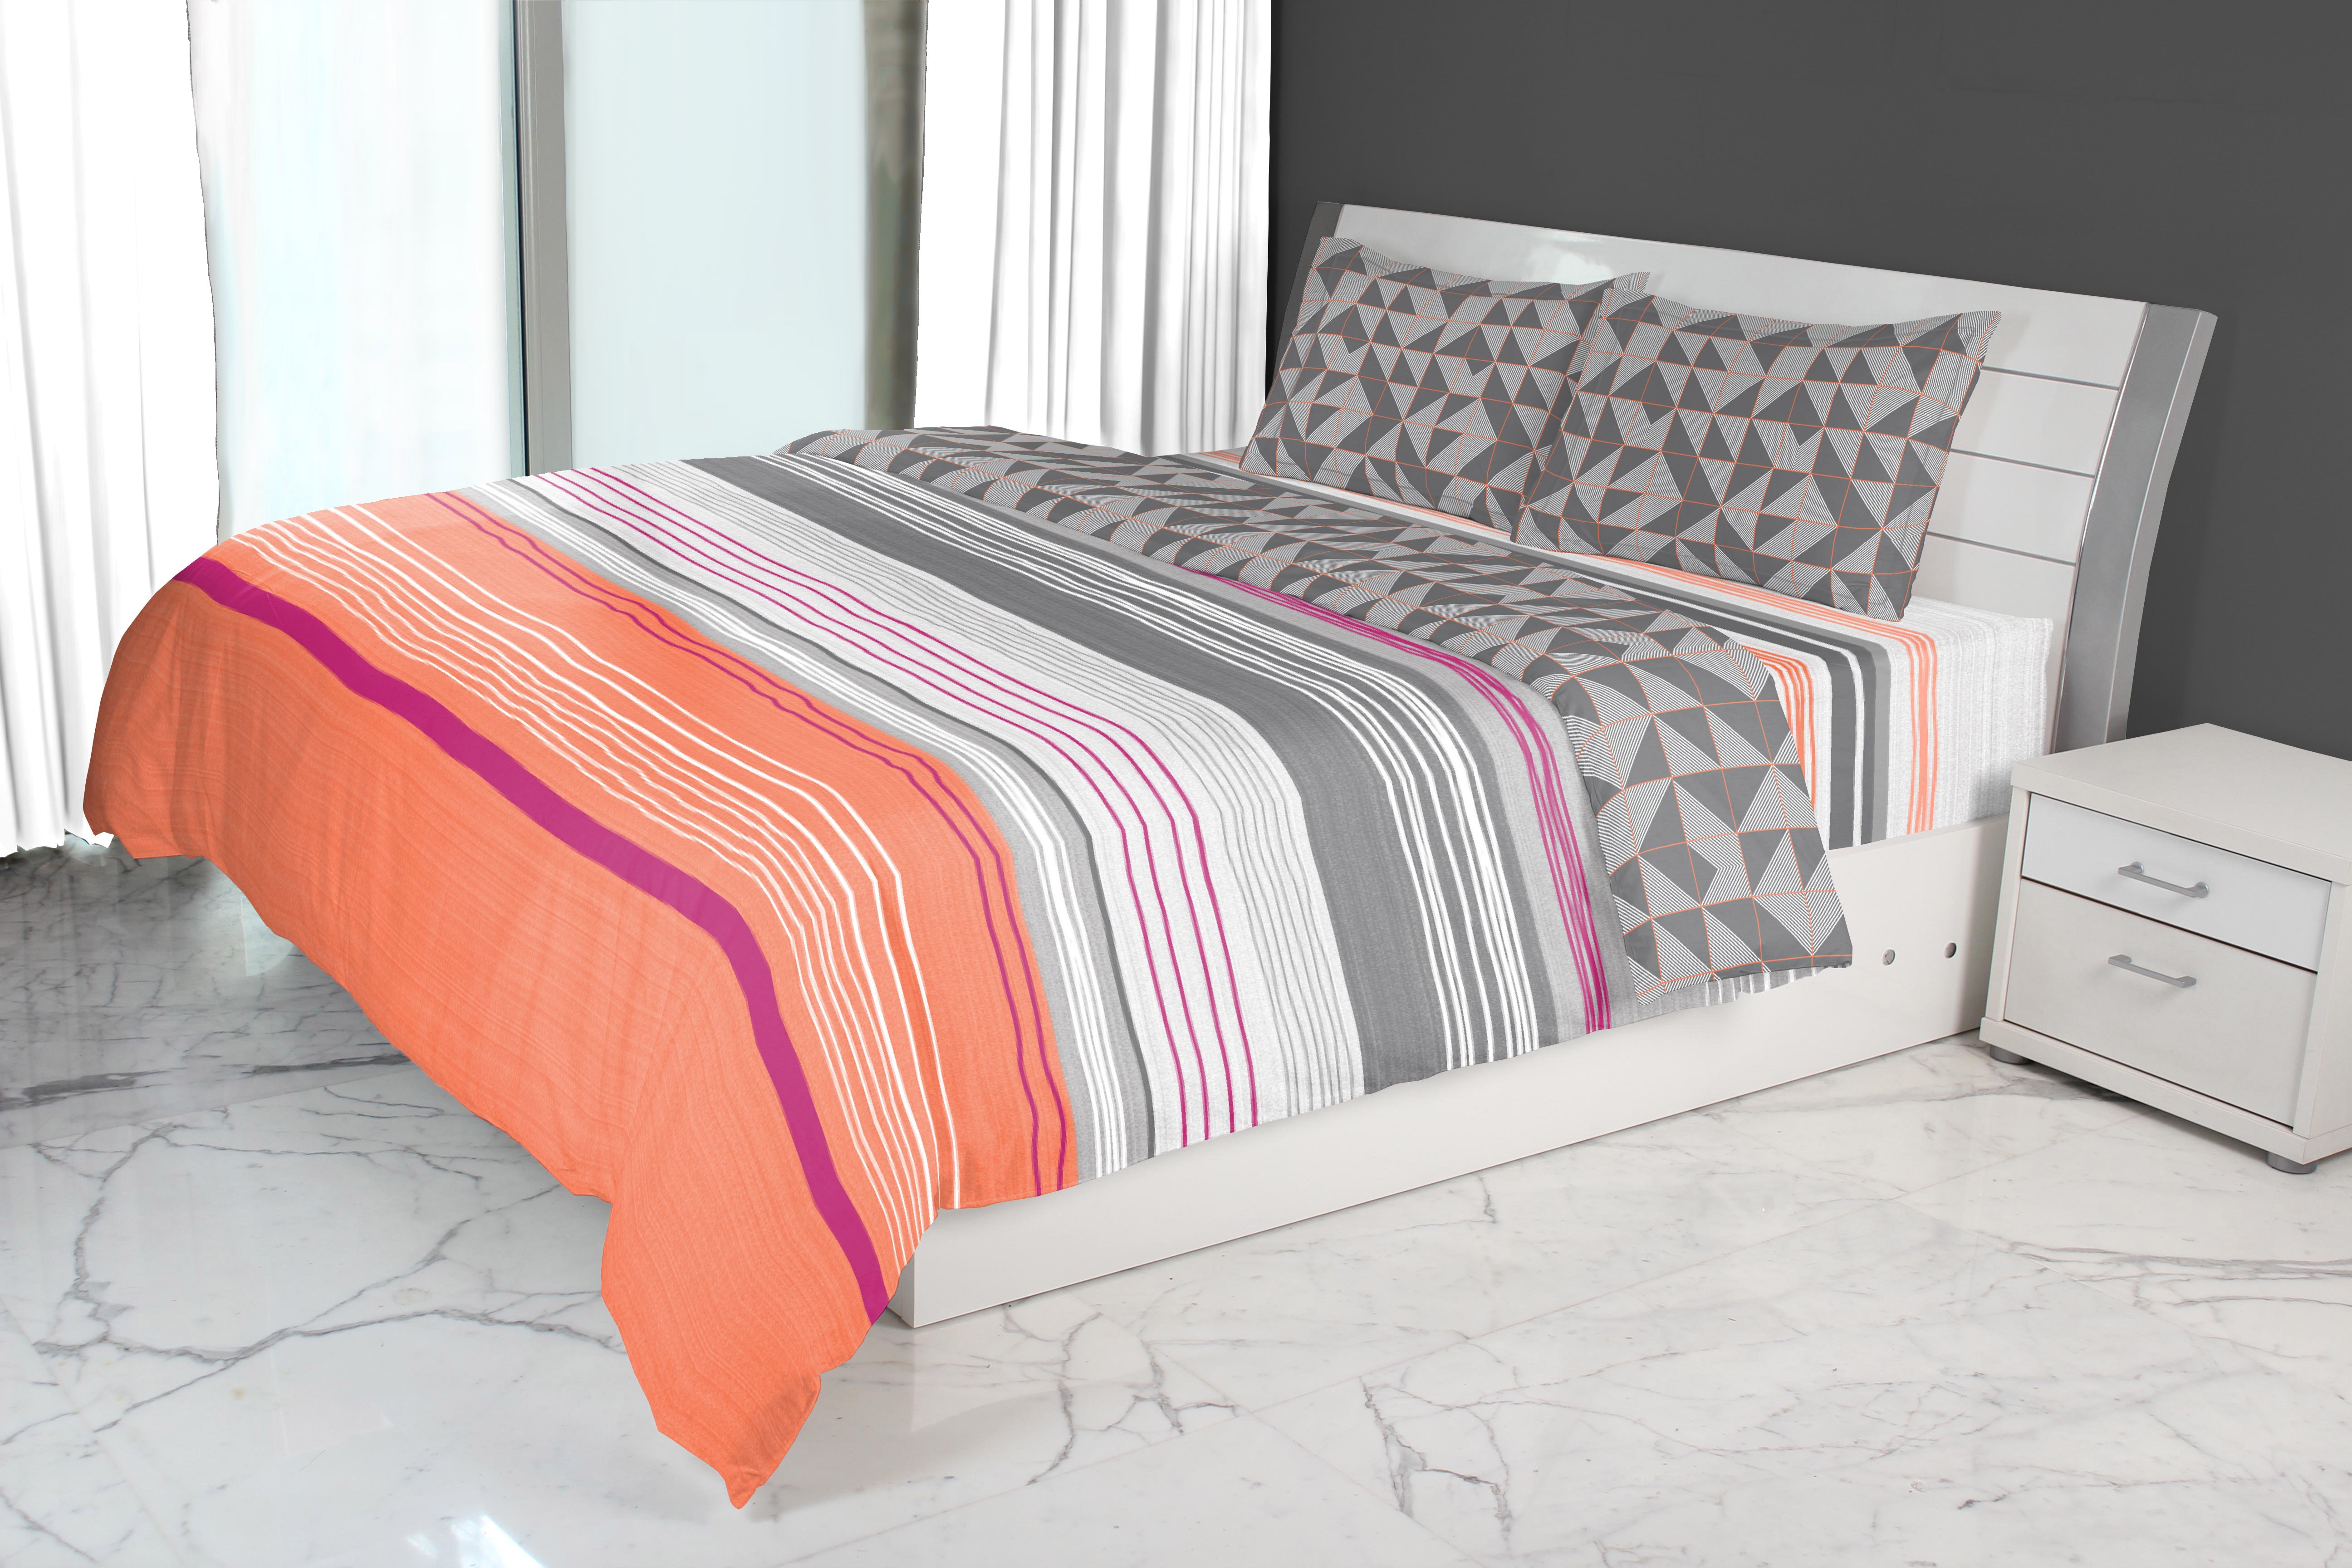 Emilia Double Comforter Charcoal Coral Cotton Comforters in Charcoal Coral Colour by Living Essence